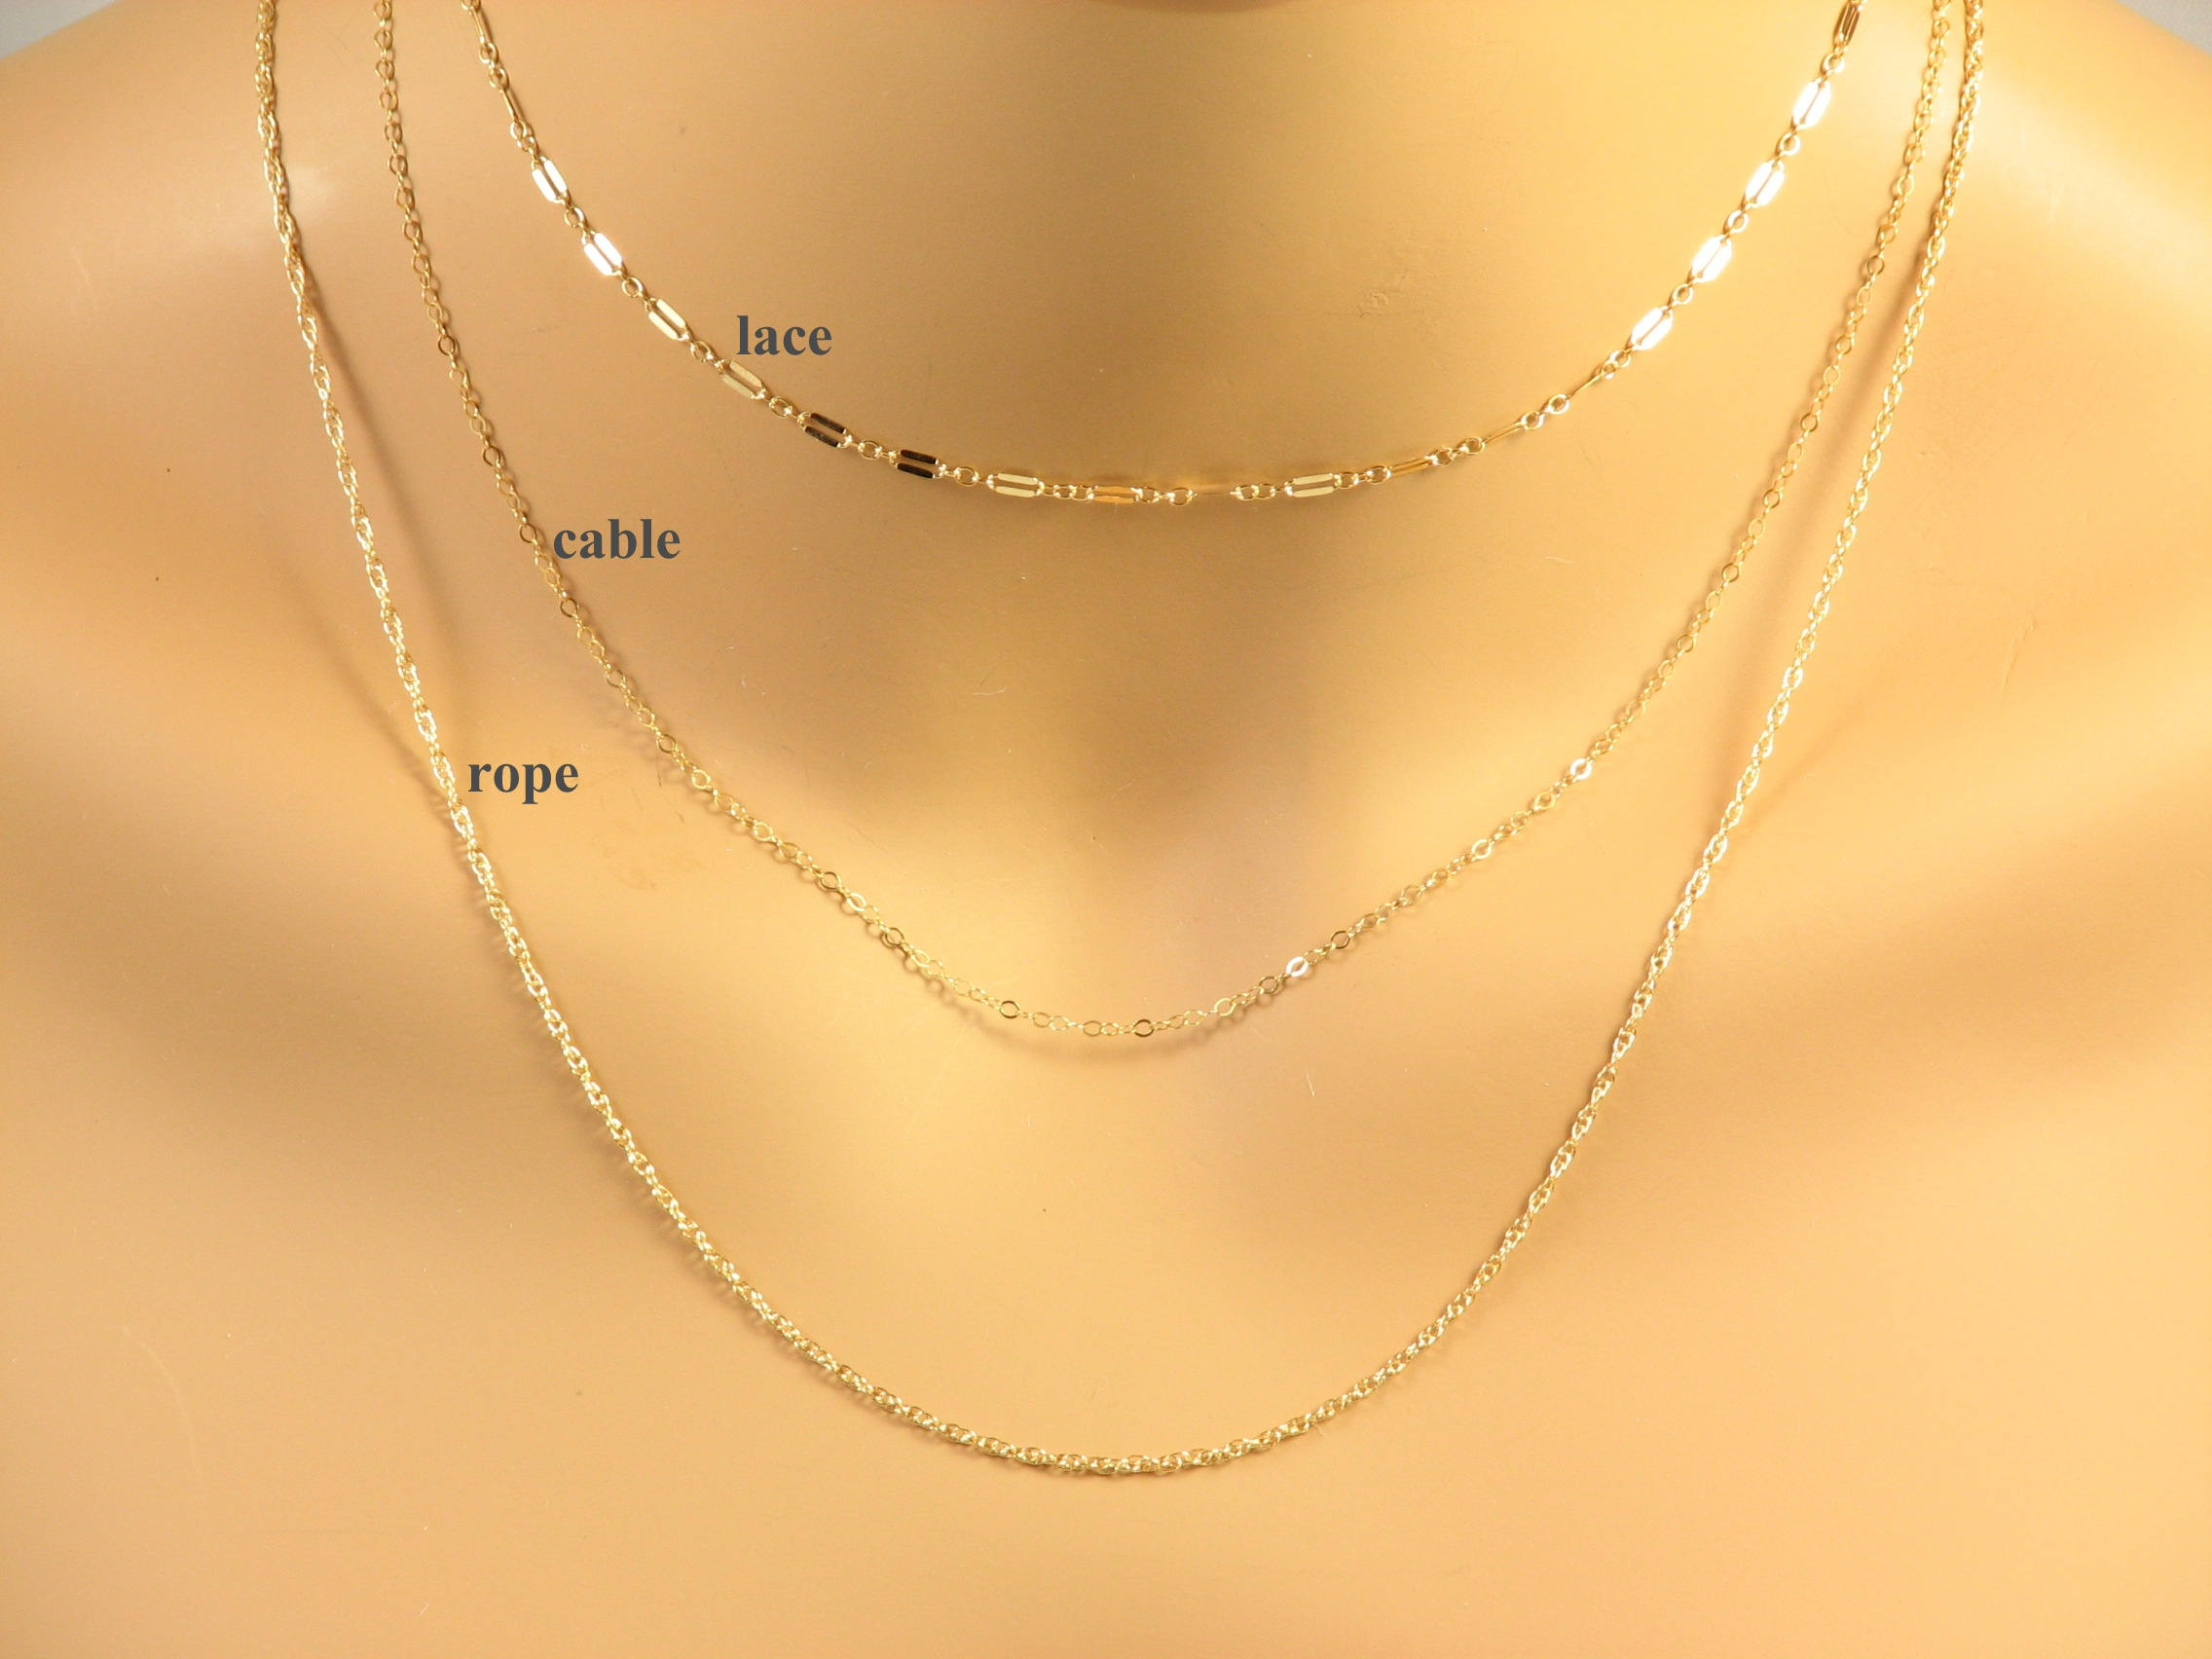 Dainty Chain Necklace, Lace Chain, Cable Chain, Rope Chain, Long Gold  Chain, Long Silver Chain, Understated Jewelry Intended For Most Recent Classic Cable Chain Necklaces (Gallery 21 of 25)